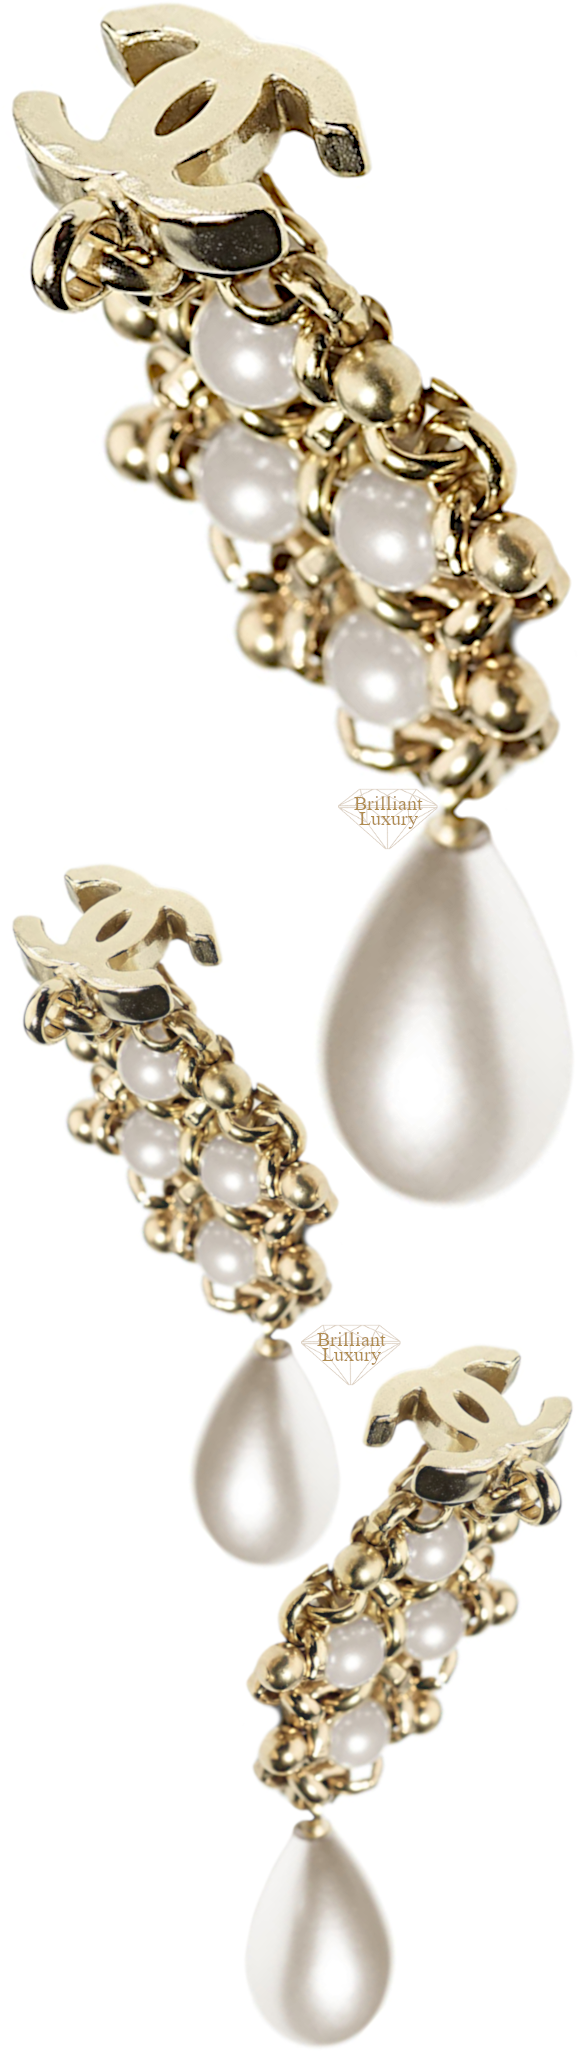 CHANEL Metal Imitation Pearls Earrings #jewelry